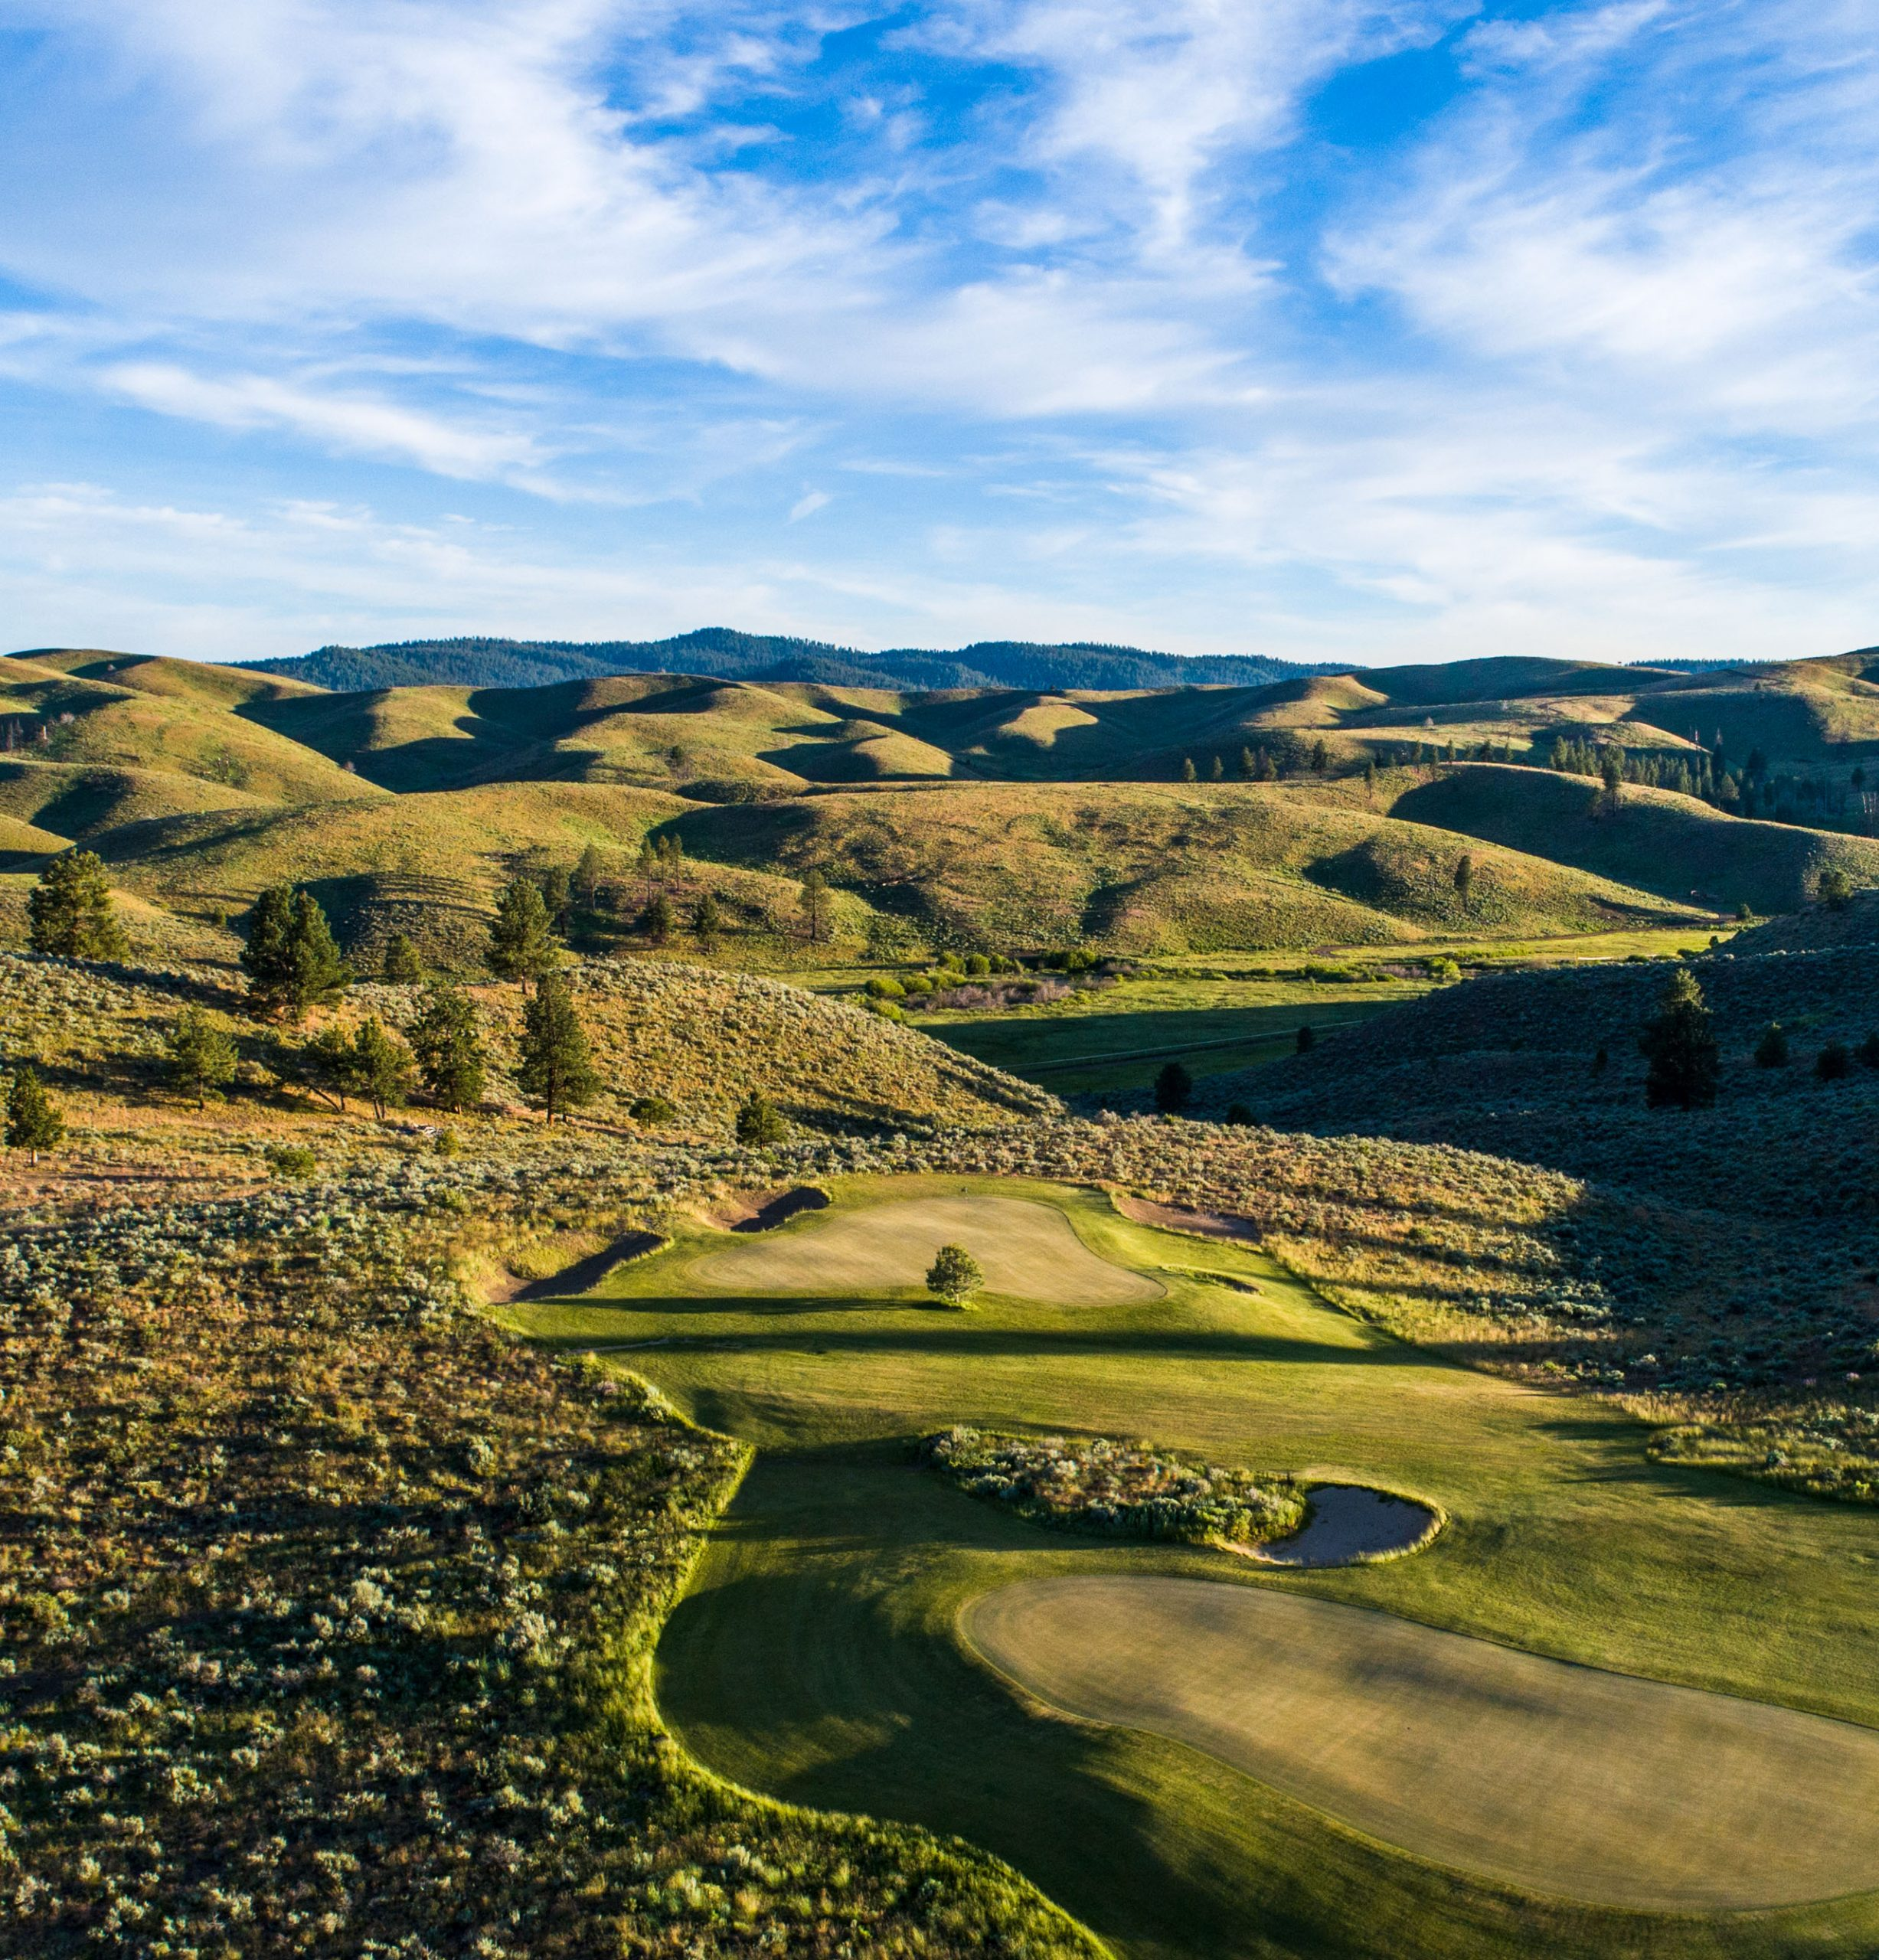 Silvies Valley Ranch spans some 140,000 acres, roughly the size of Chicago.